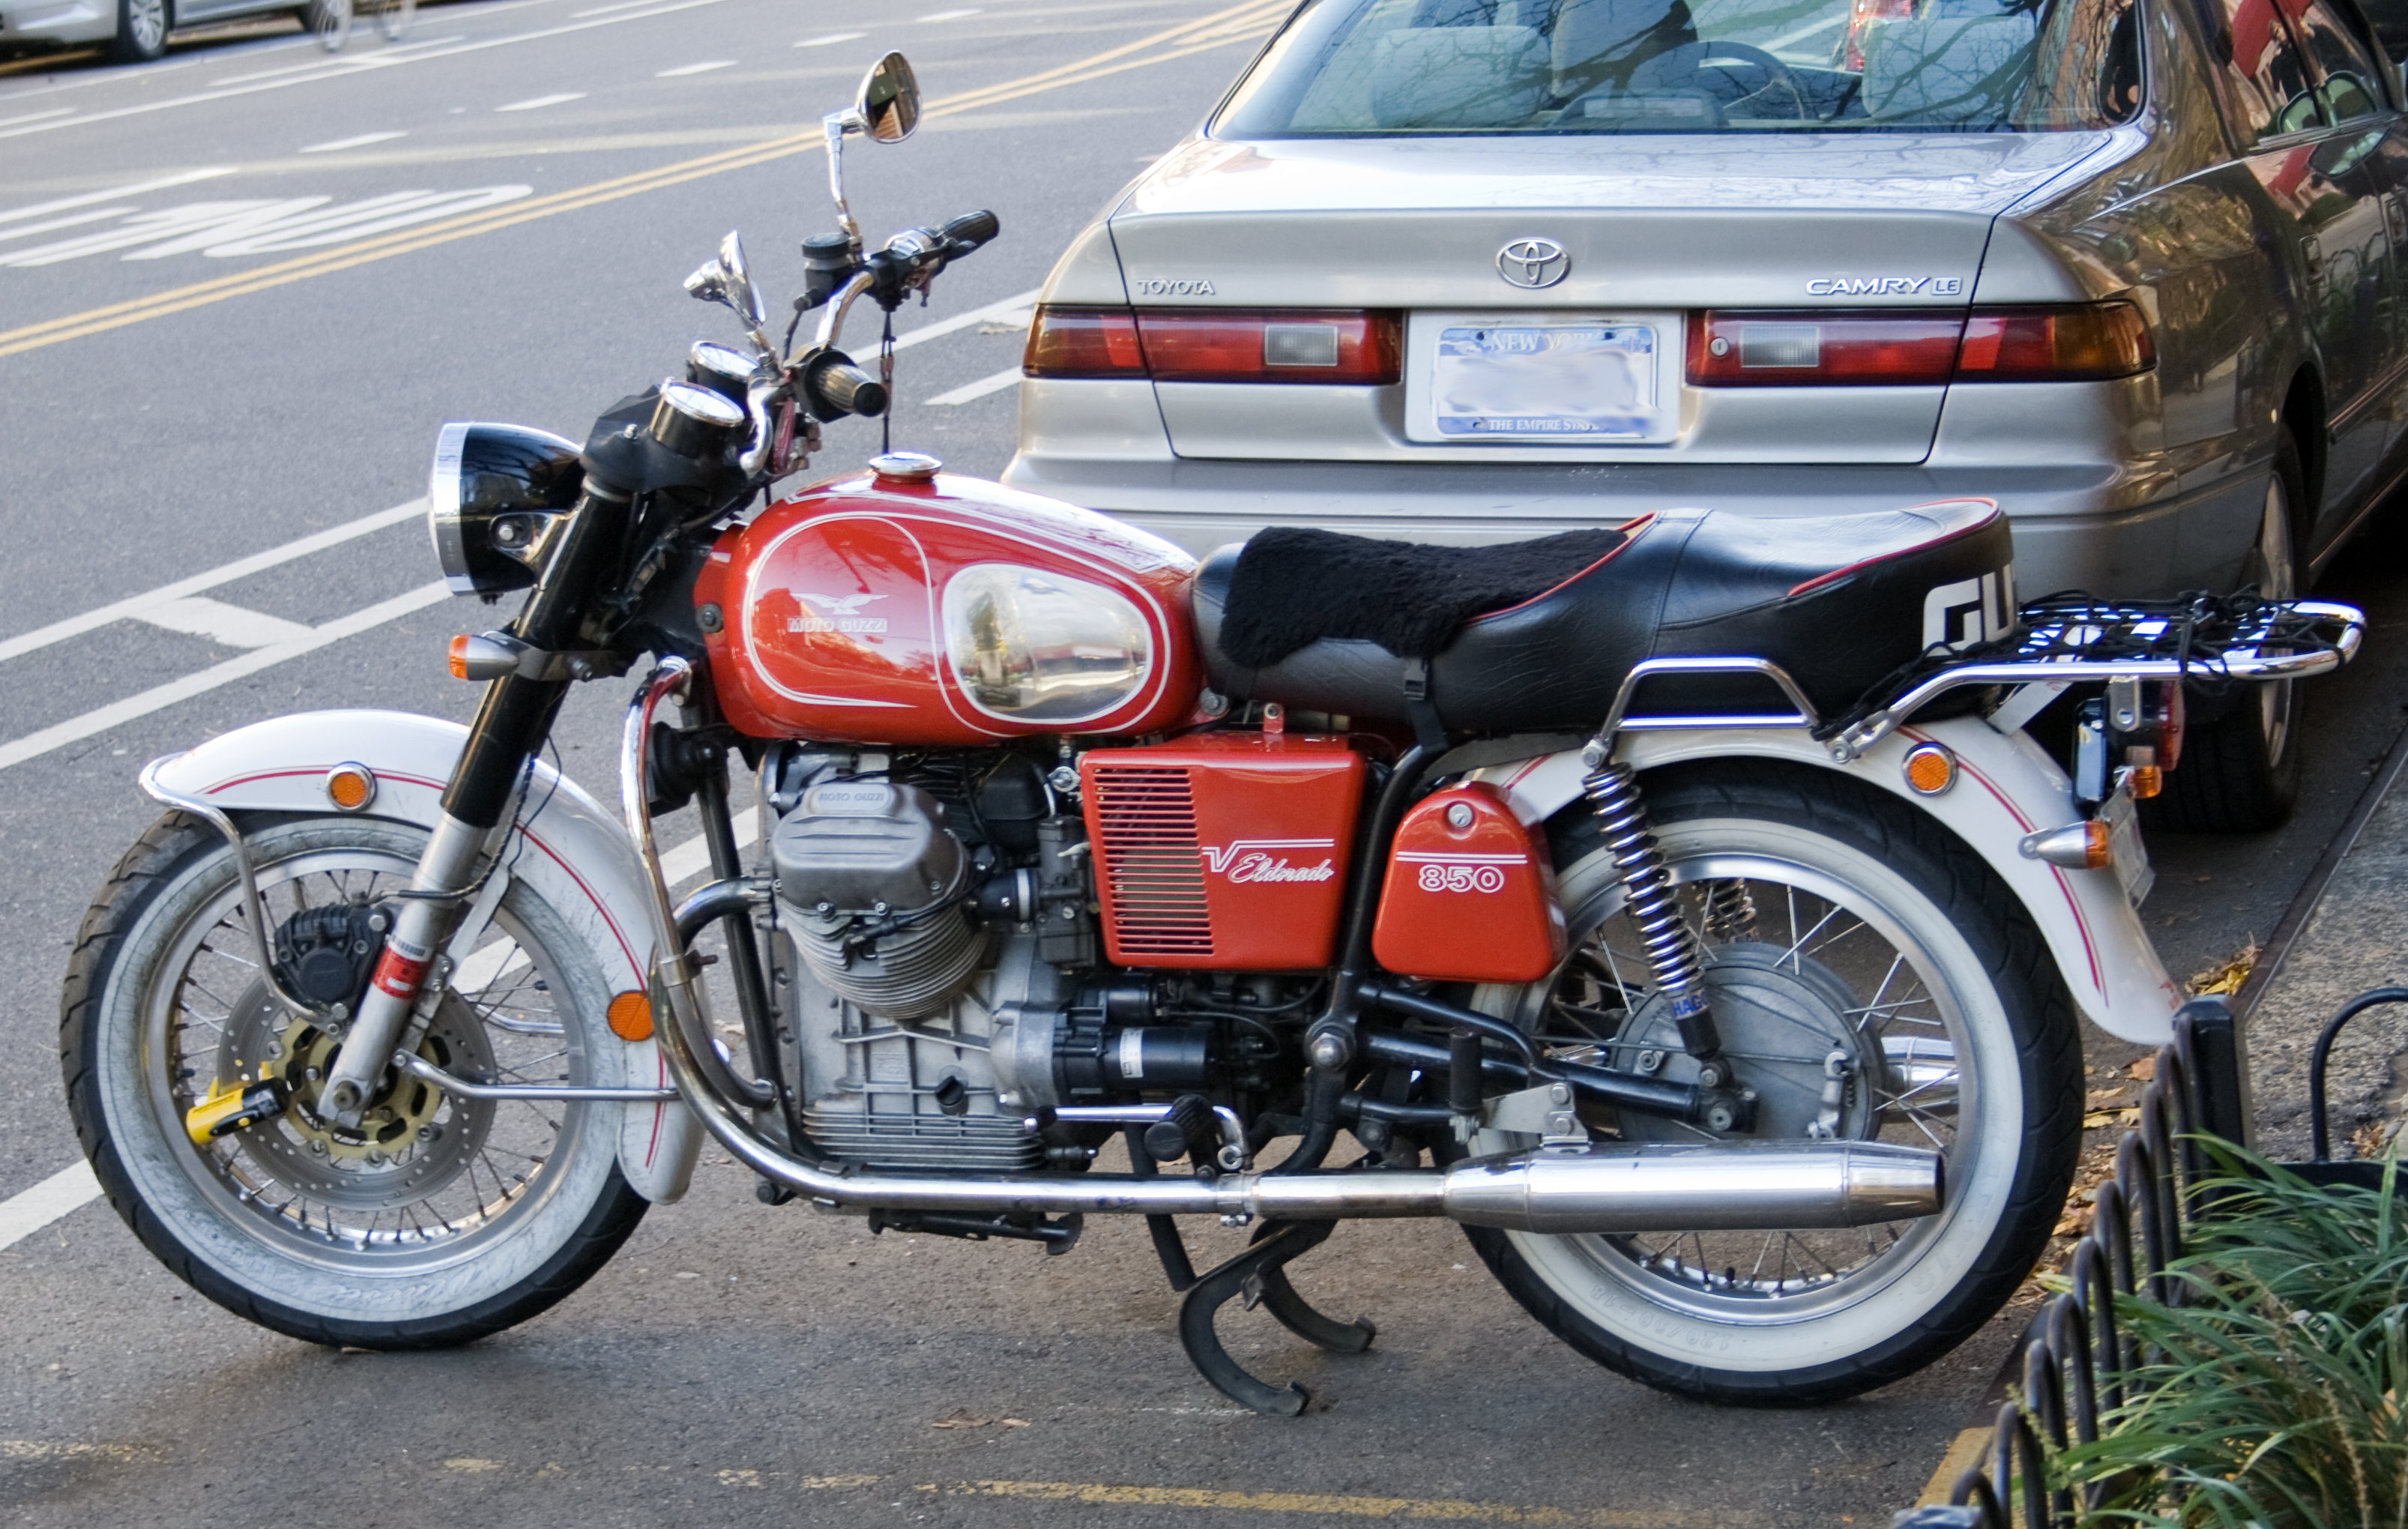 Moto guzzi 850 photo - 2